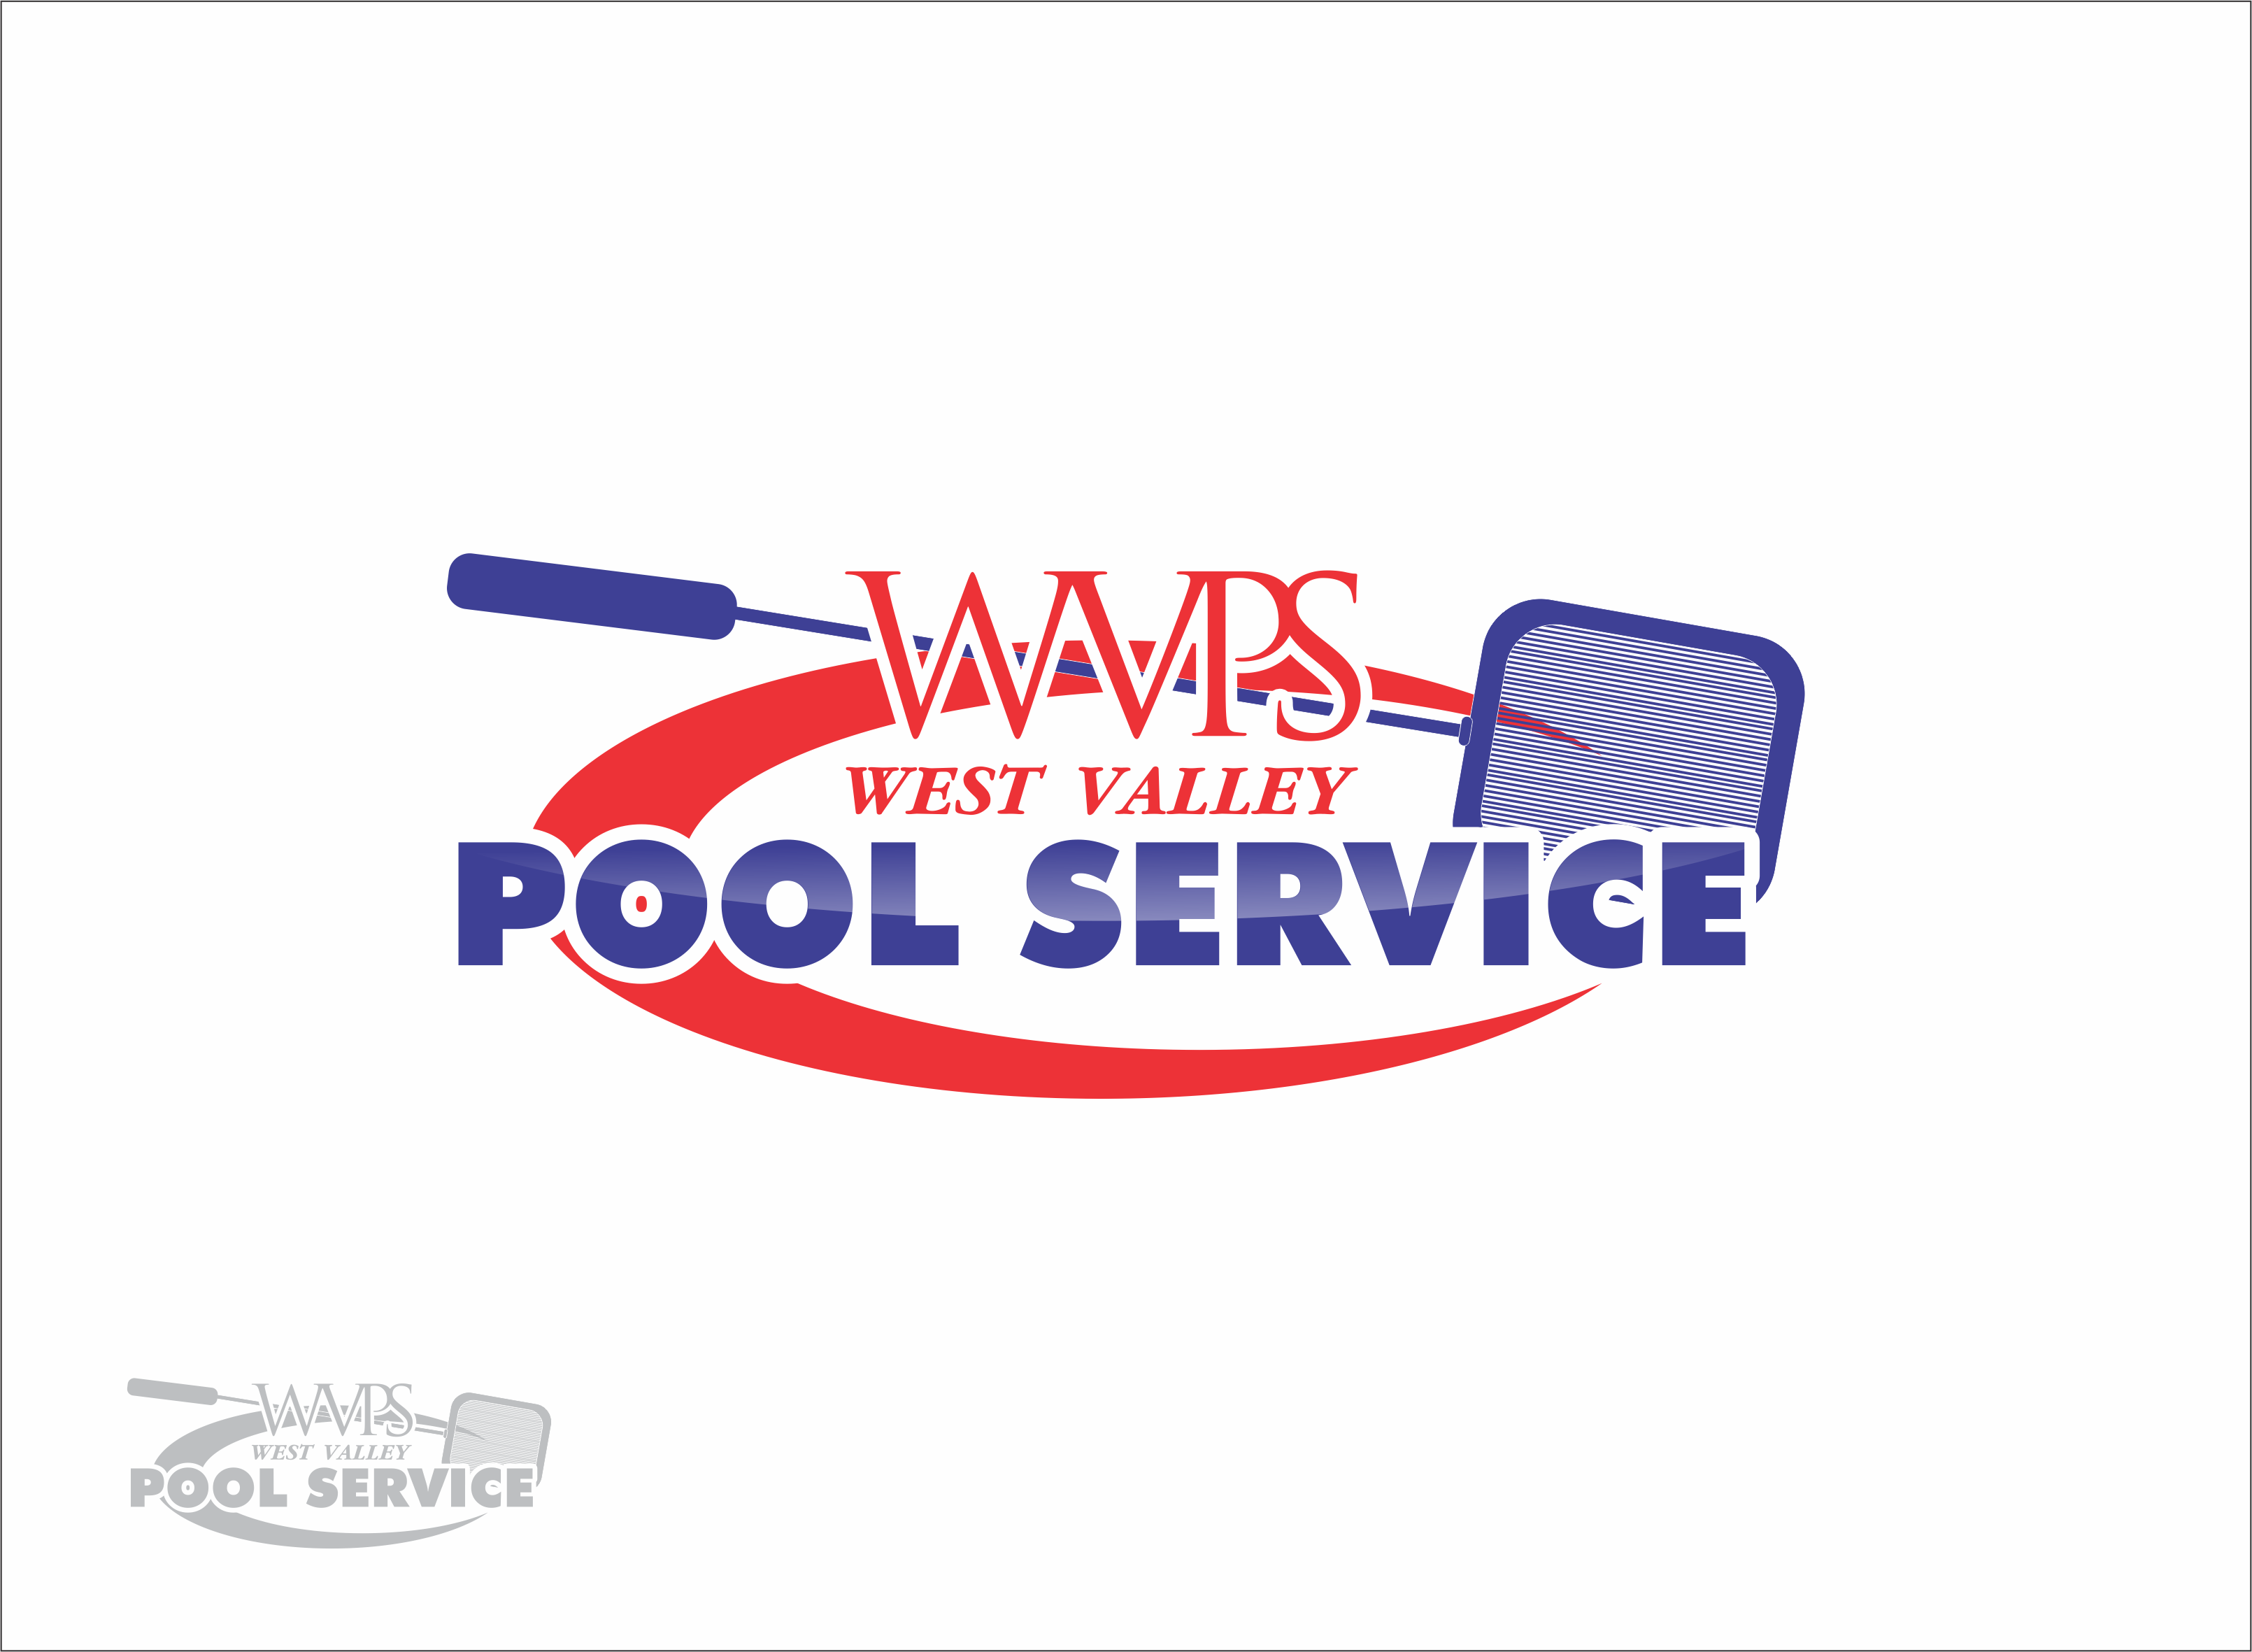 Logo Design by snow - Entry No. 98 in the Logo Design Contest Clever Logo Design for West Valley Pool Service.